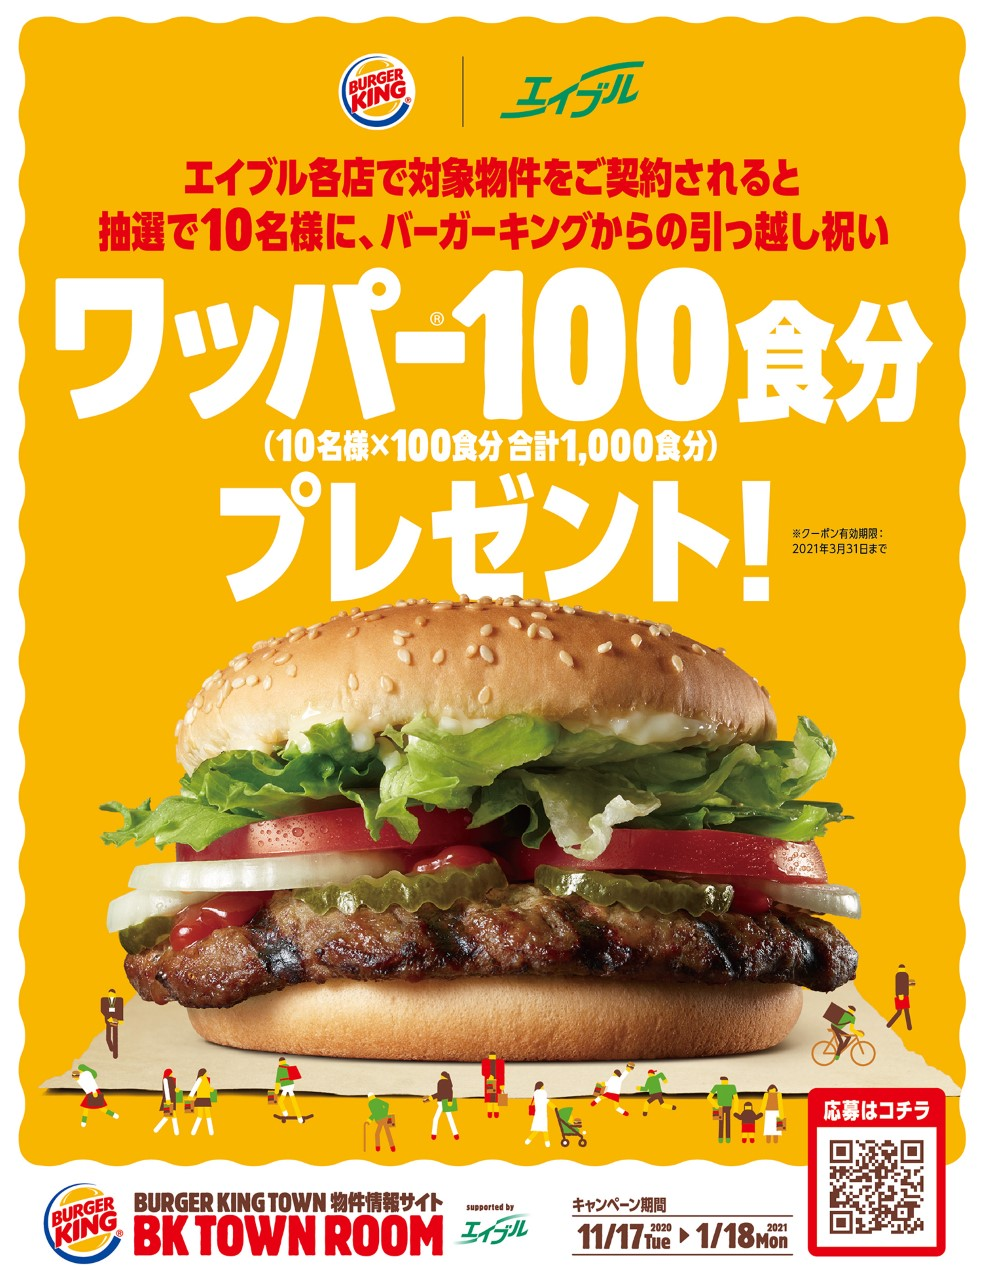 Burger-King-Japan-rental-real-estate-property-lease-Japanese-apartments-BK-Town-live-2.jpg